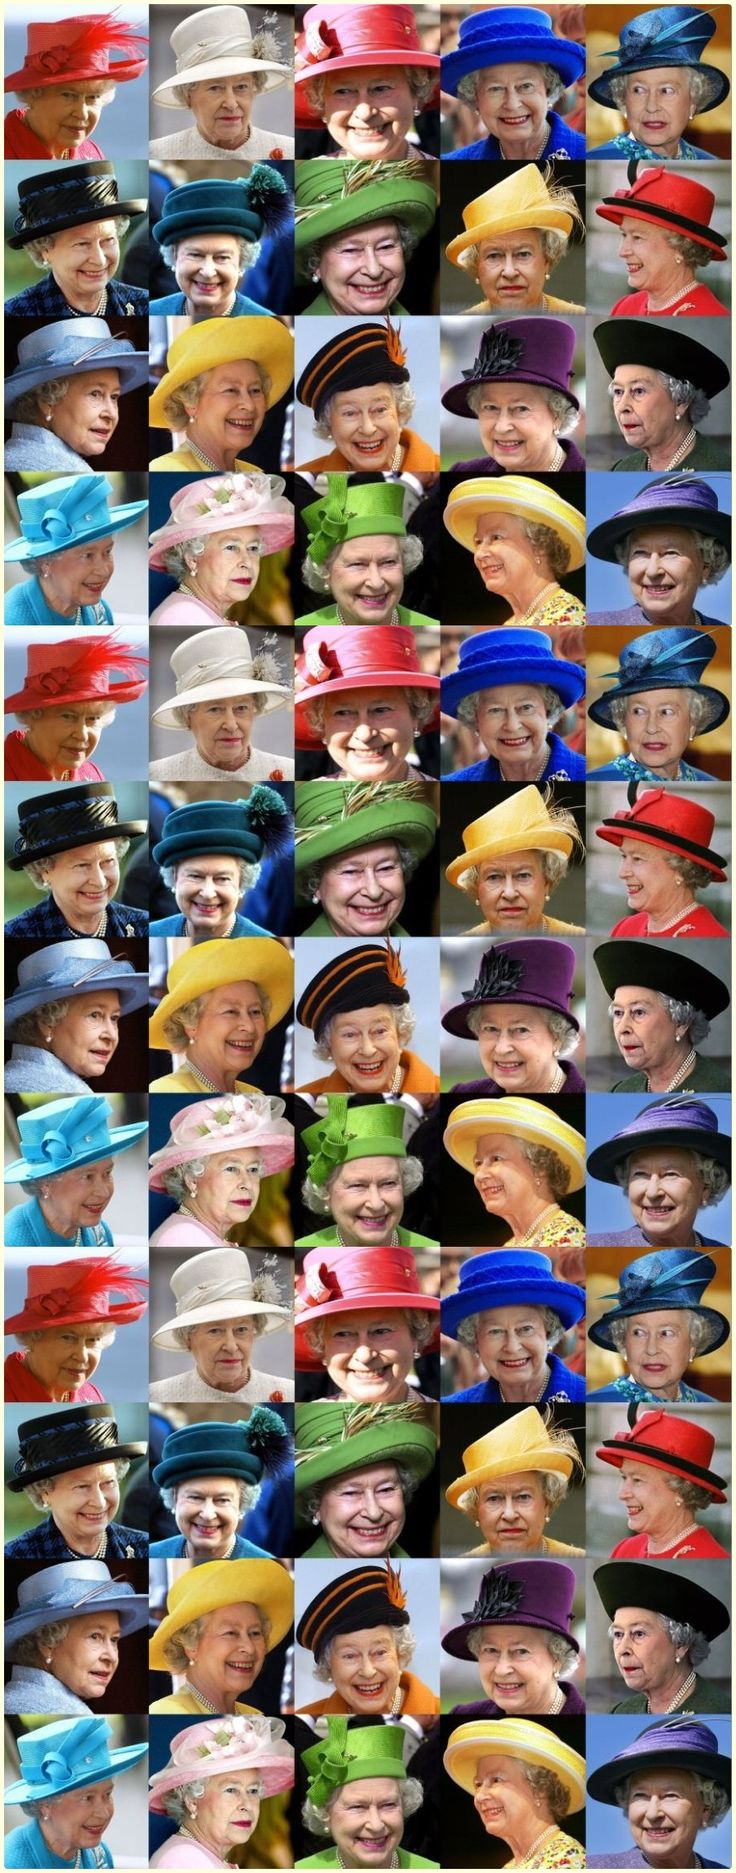 Hats worn by the Queen. I love almost all of these. I guess I'm secretly wanting to dress like a little old lady. LOL.